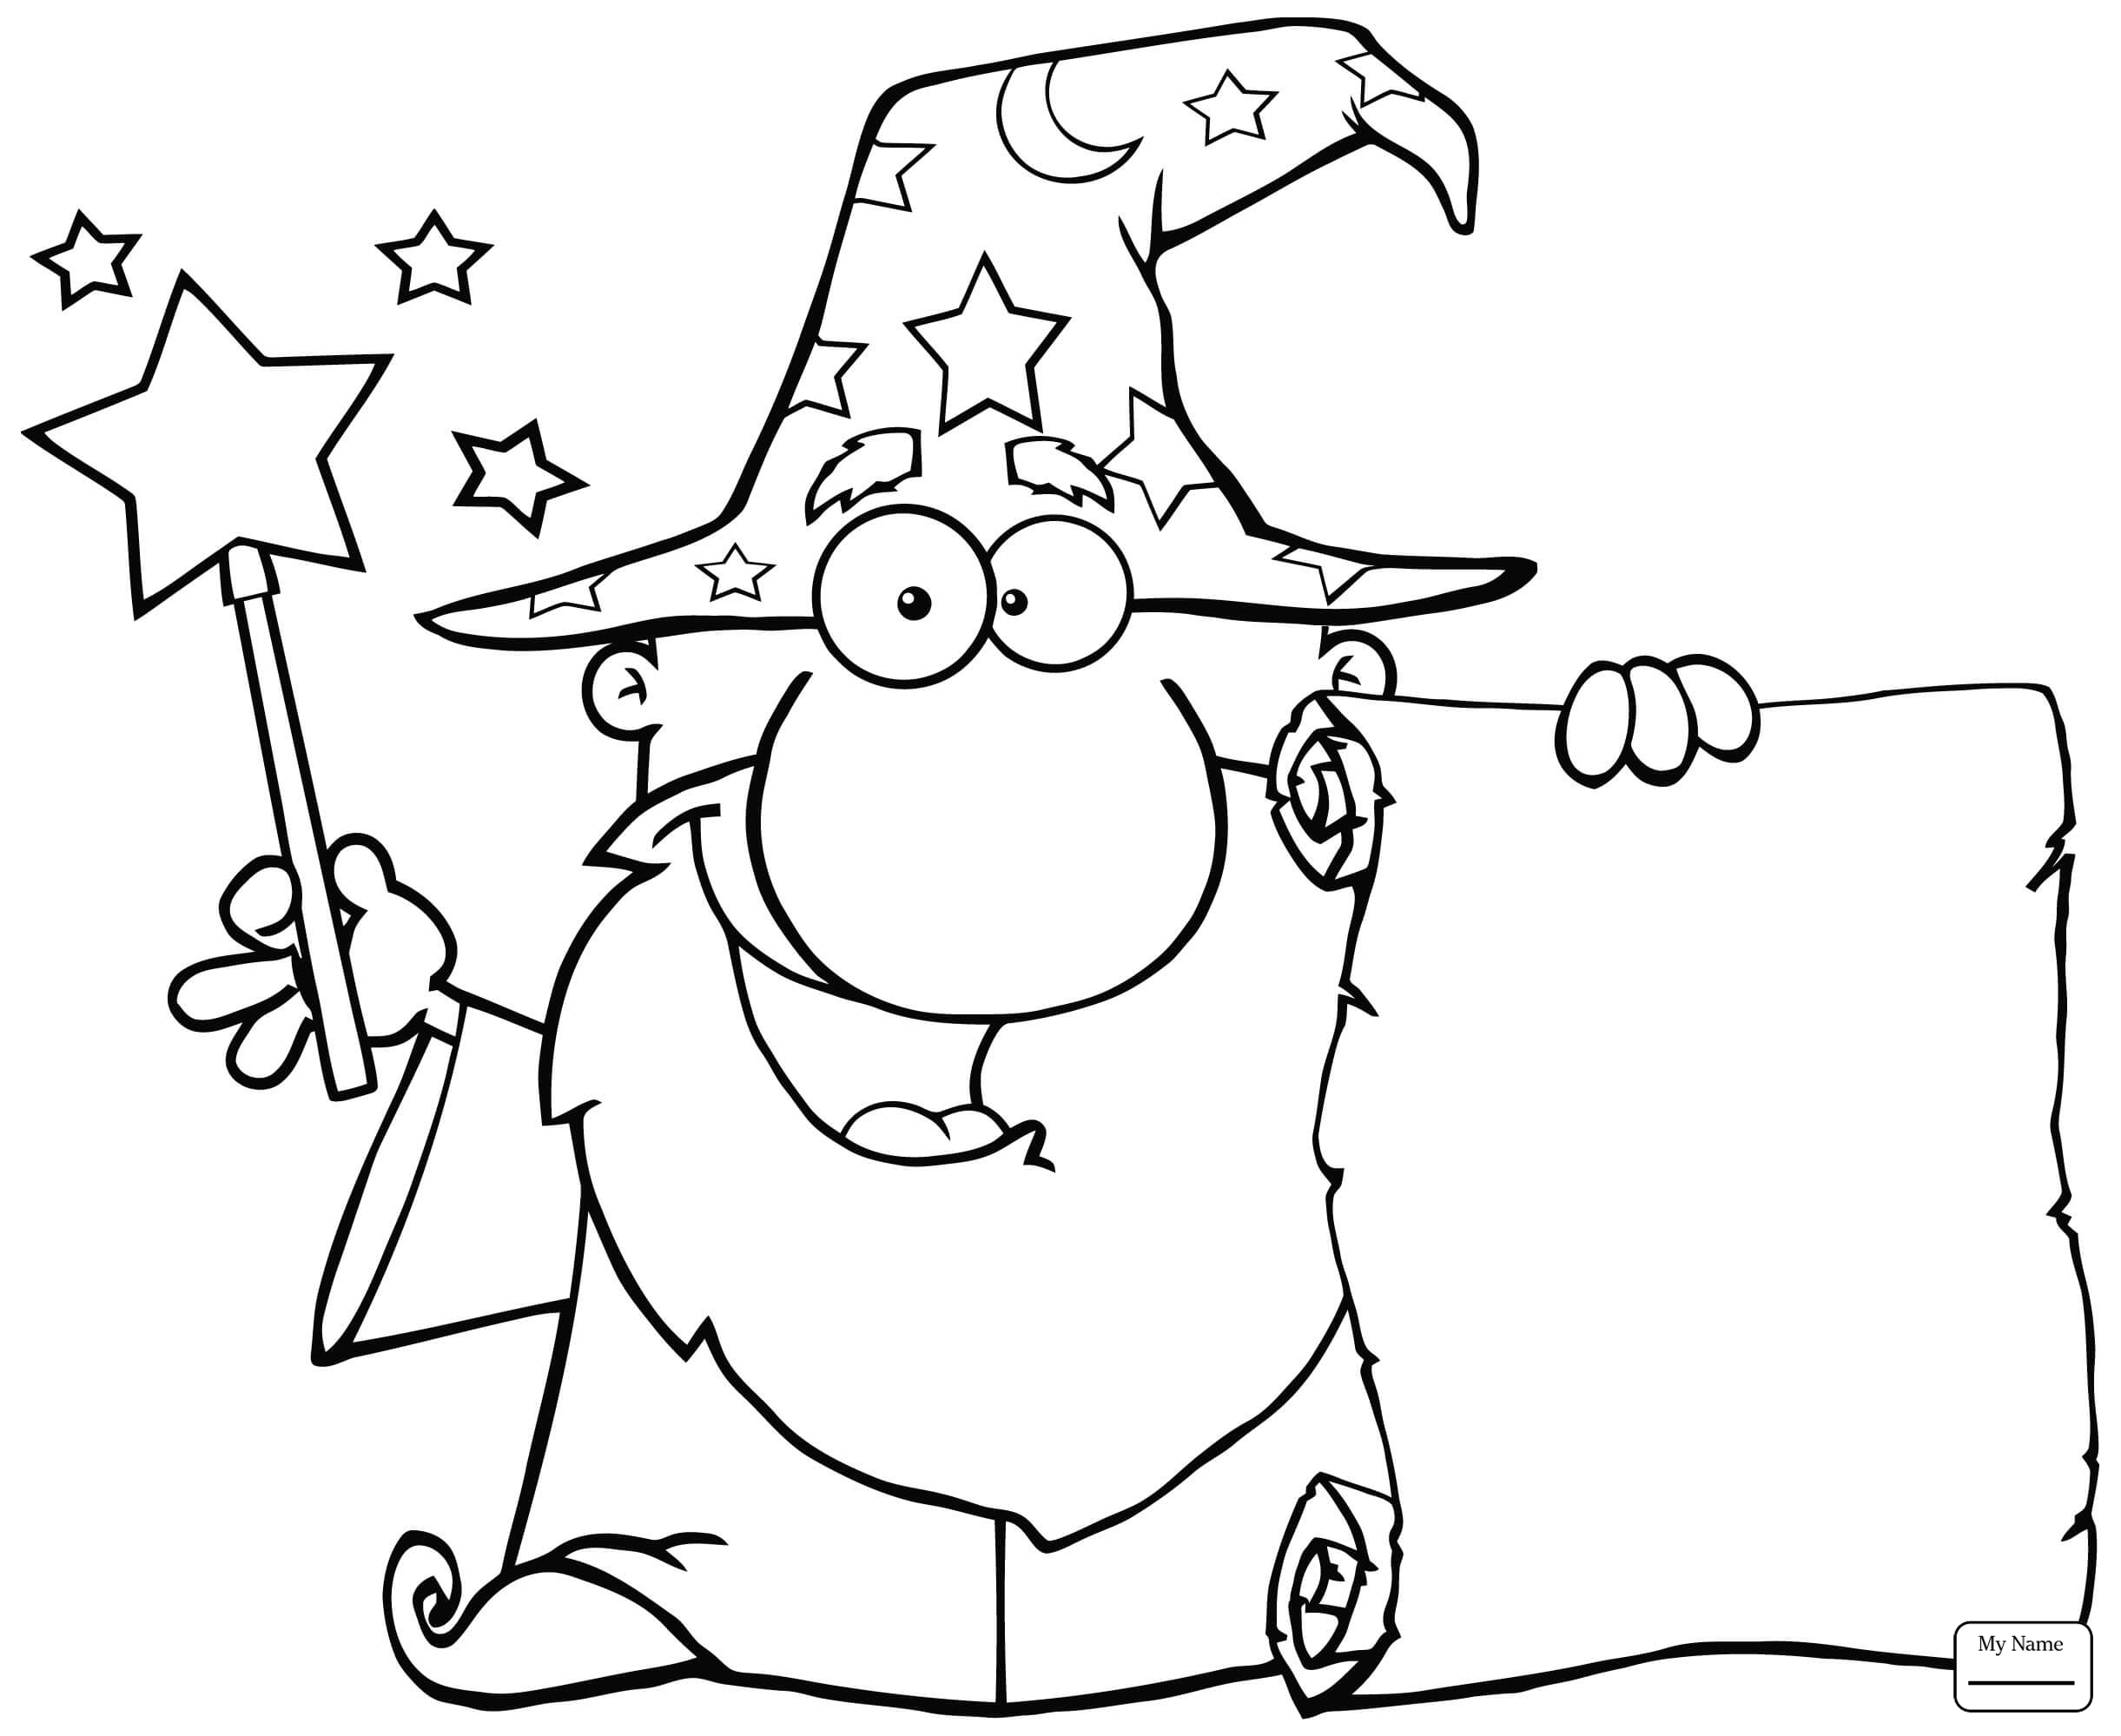 2442x1999 Fantasy Mythology Wizard Wizard Magic Wand Wizard Coloring Pages